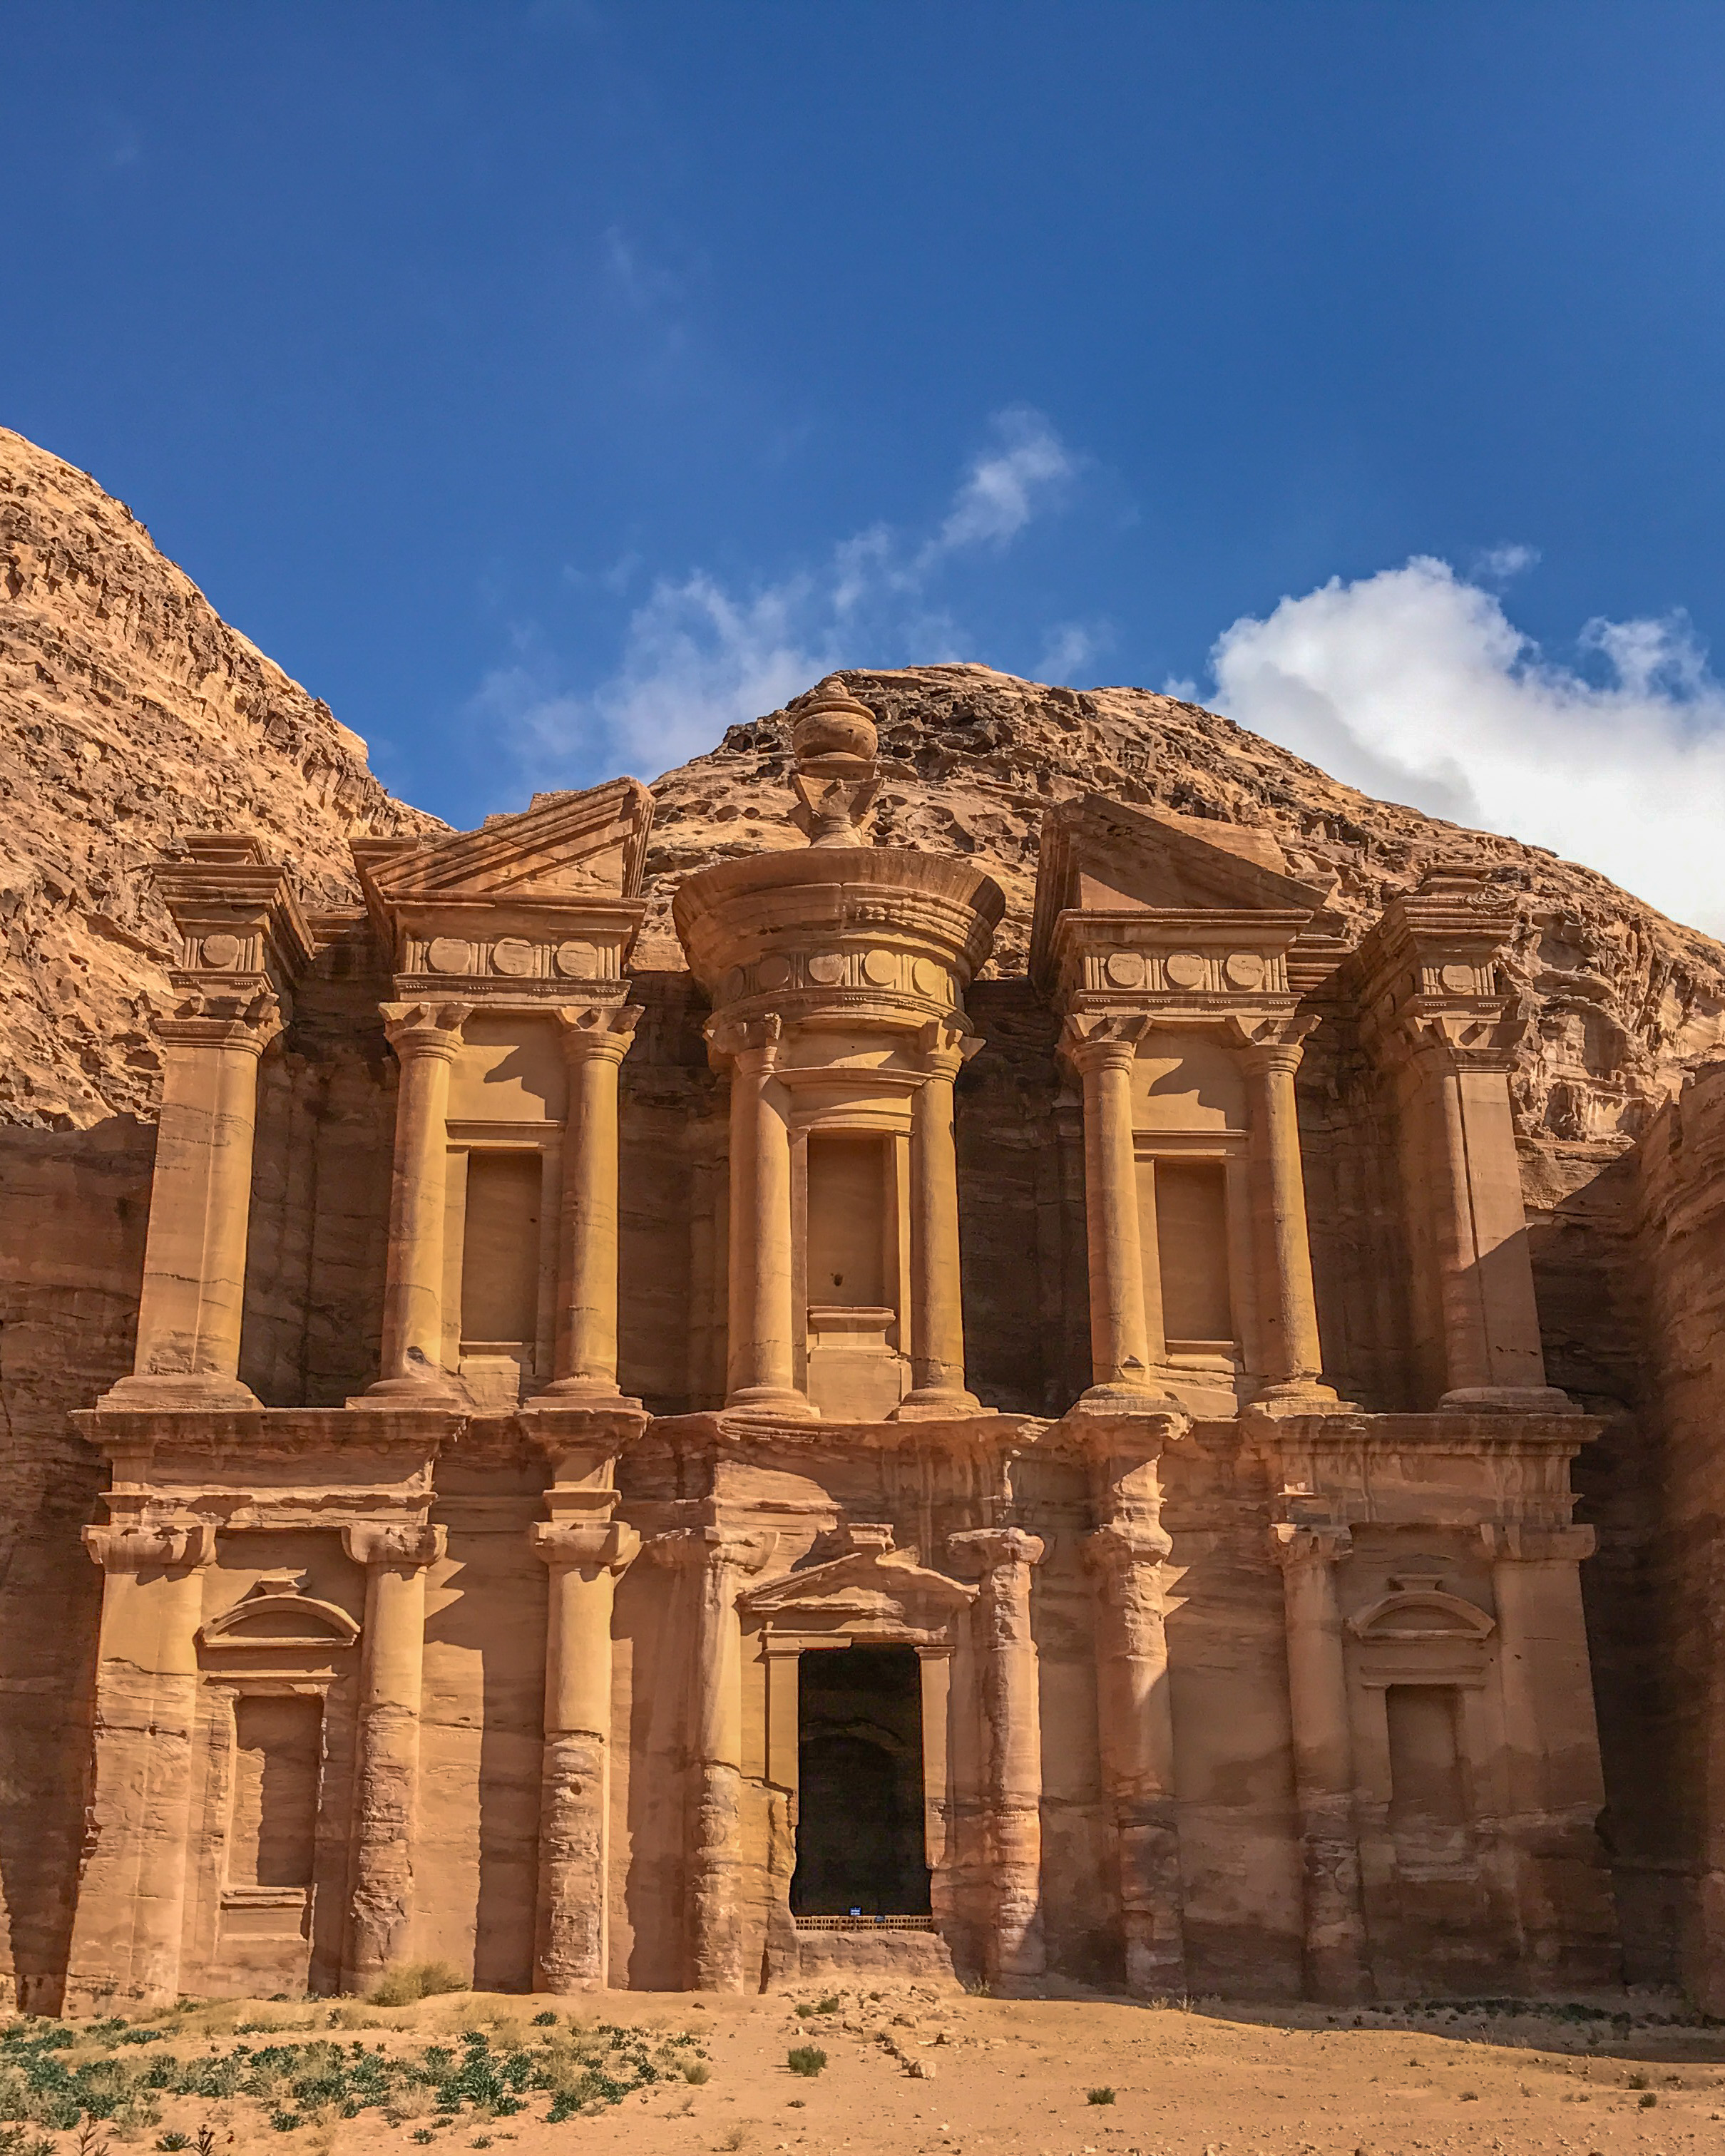 Petra, Jordan, one of the 7 wonders of the world